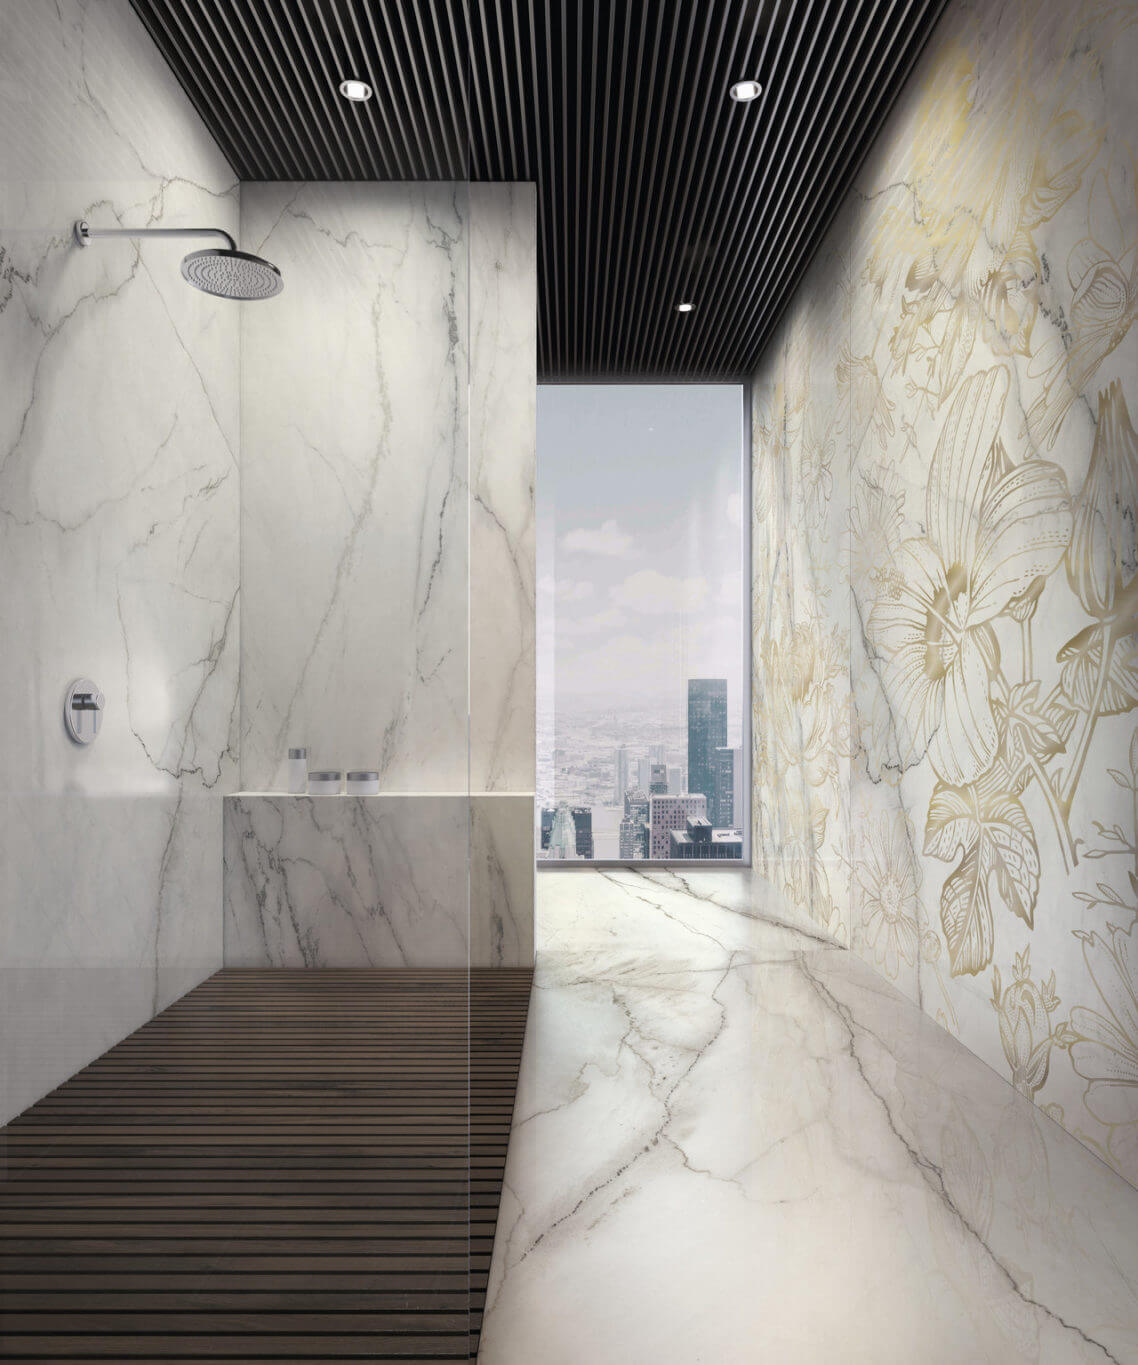 Porcelain-look ceramic tile shower walls